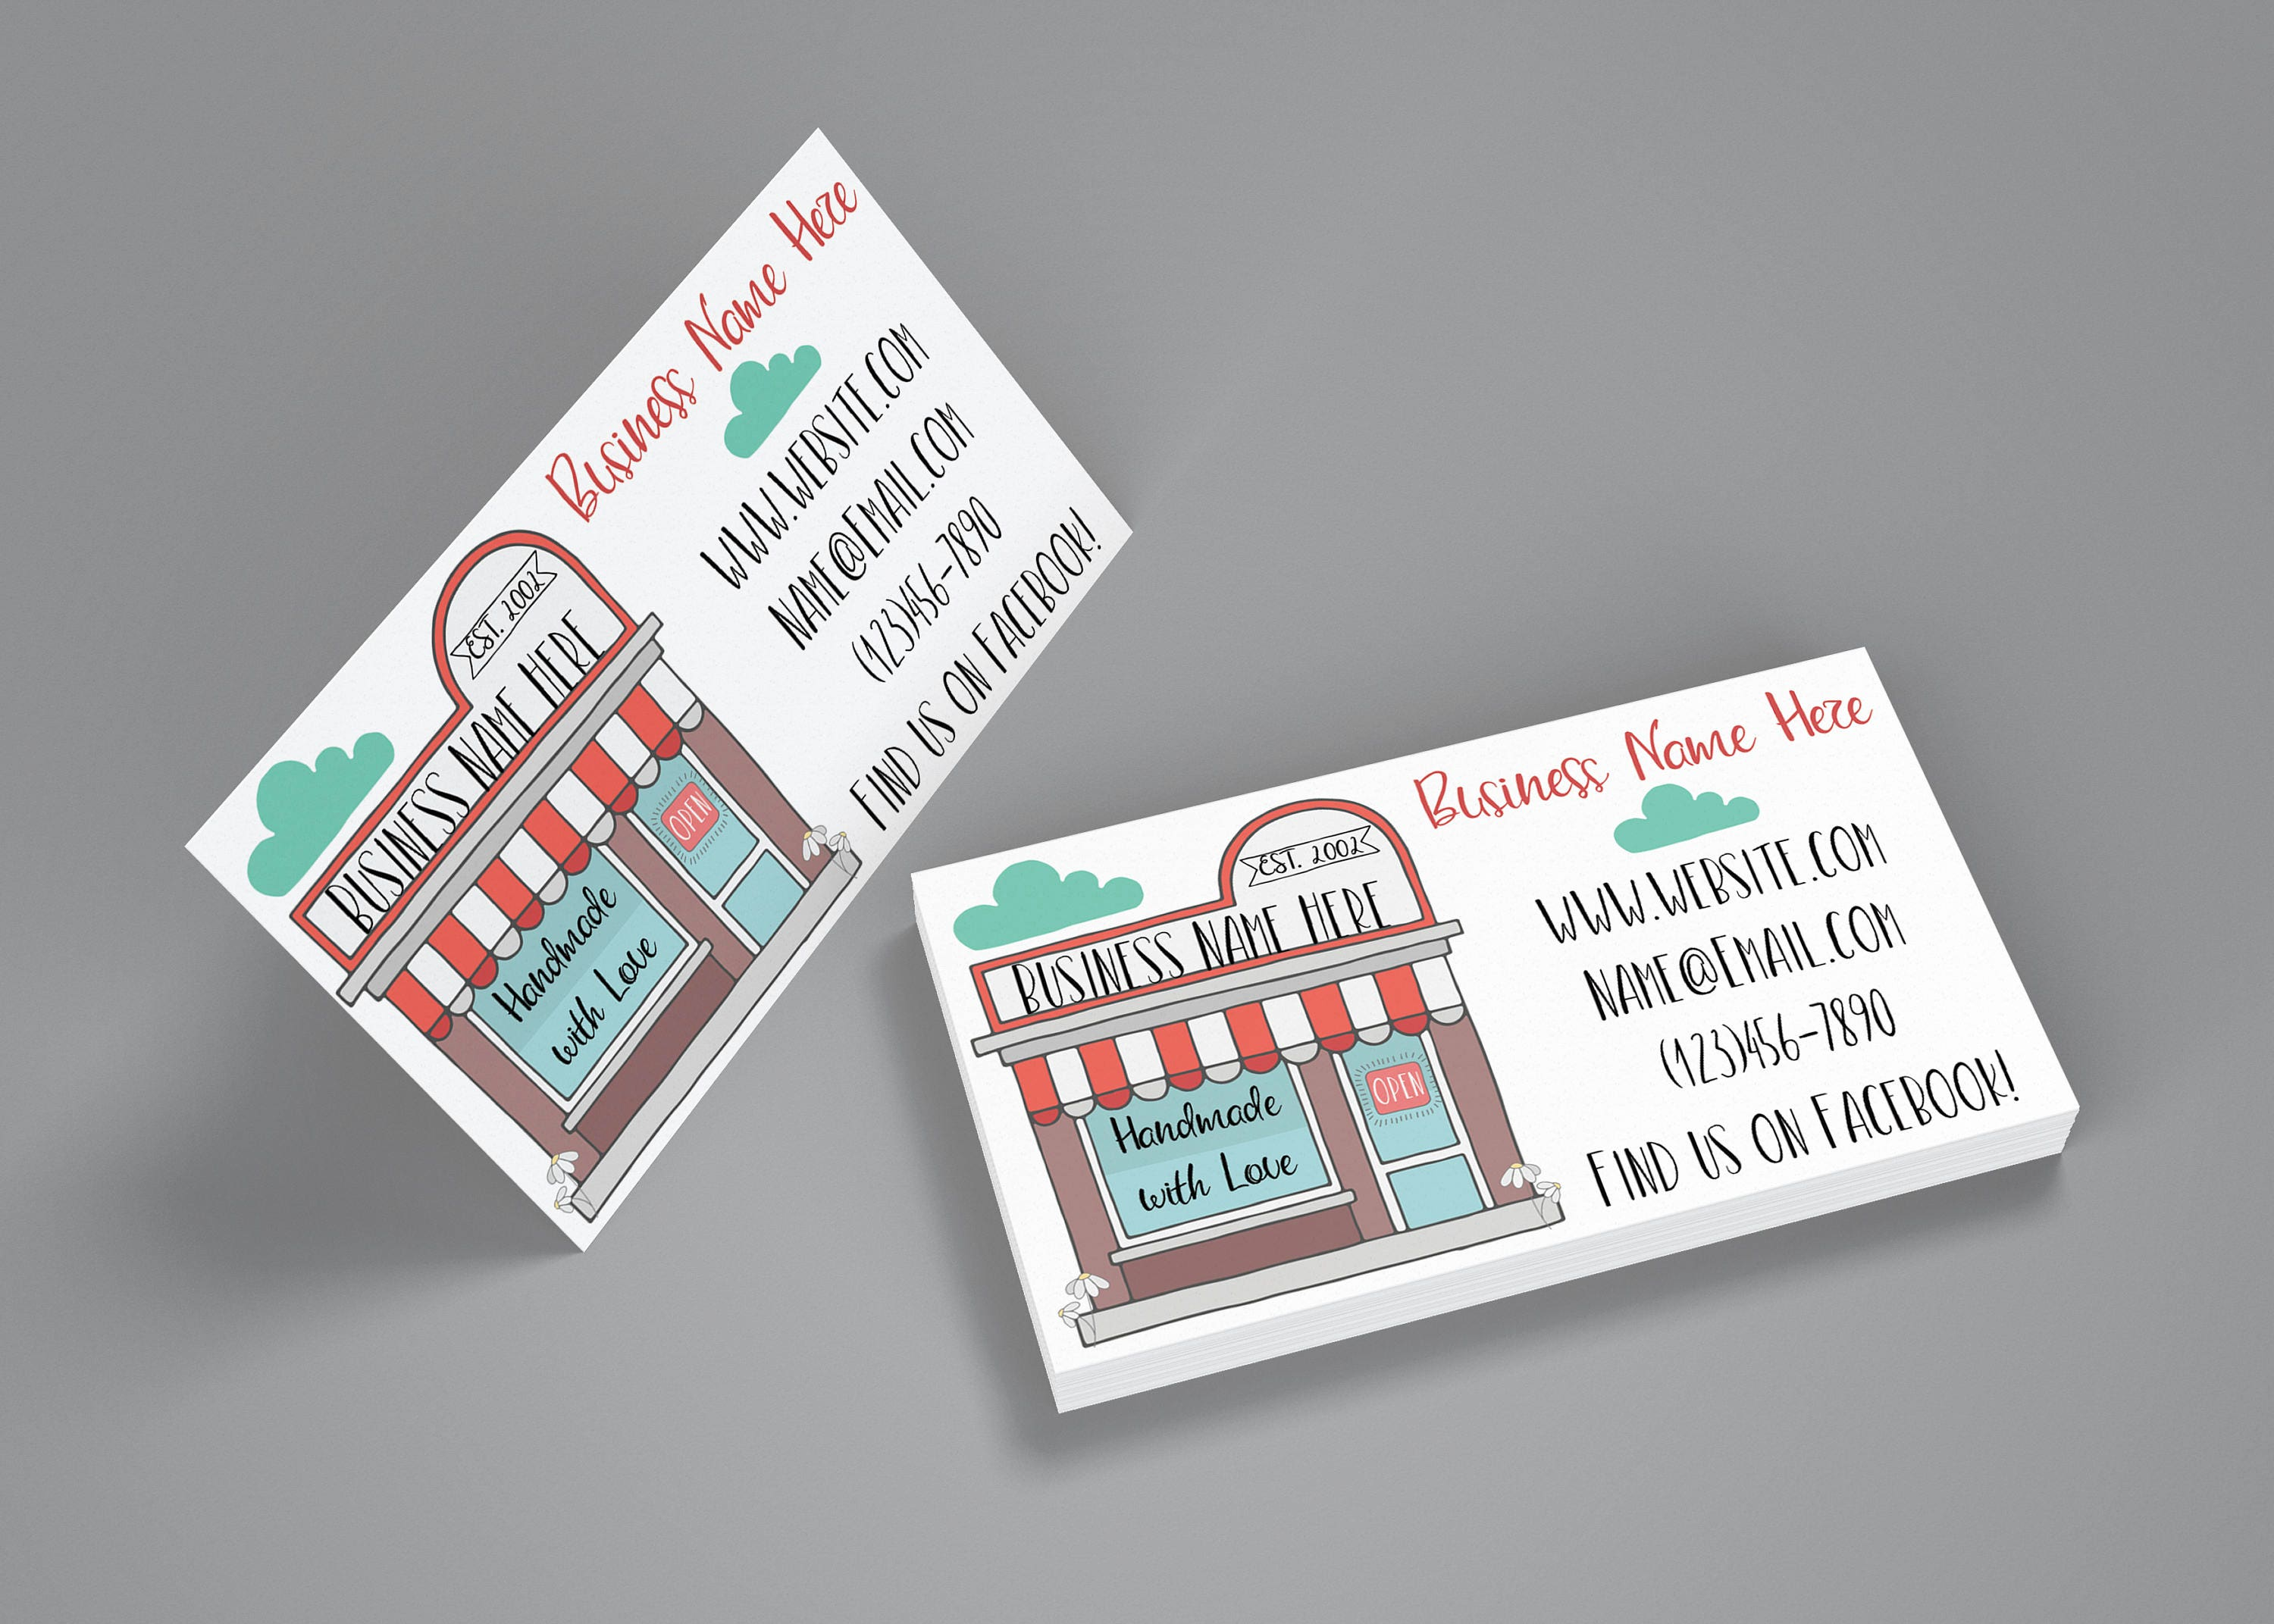 Business cards my shop business cards my shop retailer business cards my shop business cards my shop retailer business cards small business small business cards cute cards branding colourmoves